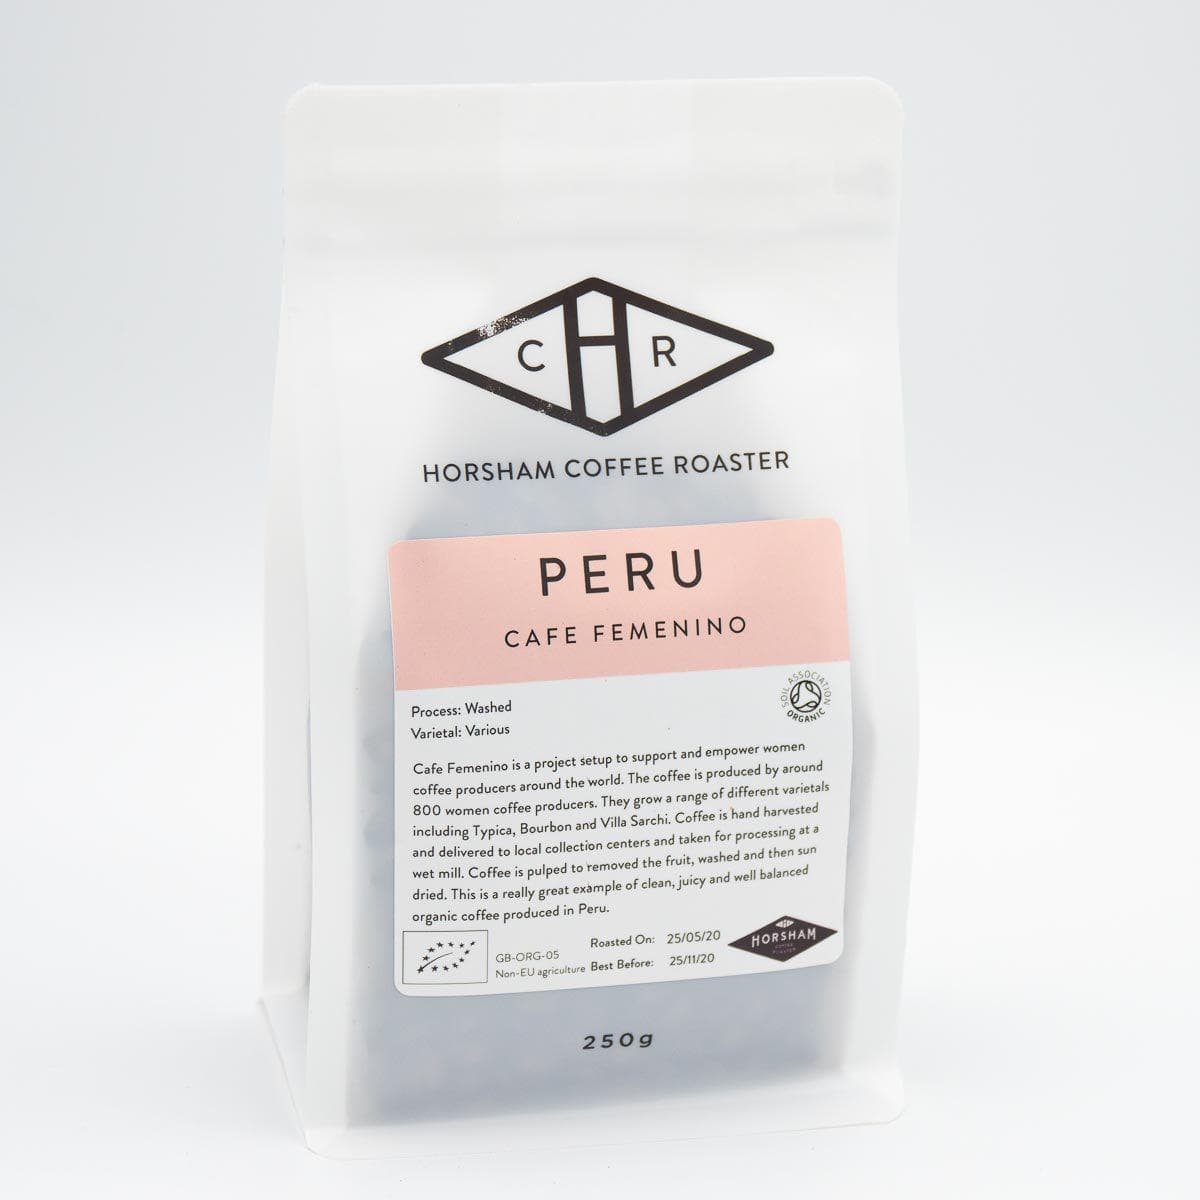 Peru Cafe femenino Organic Coffee